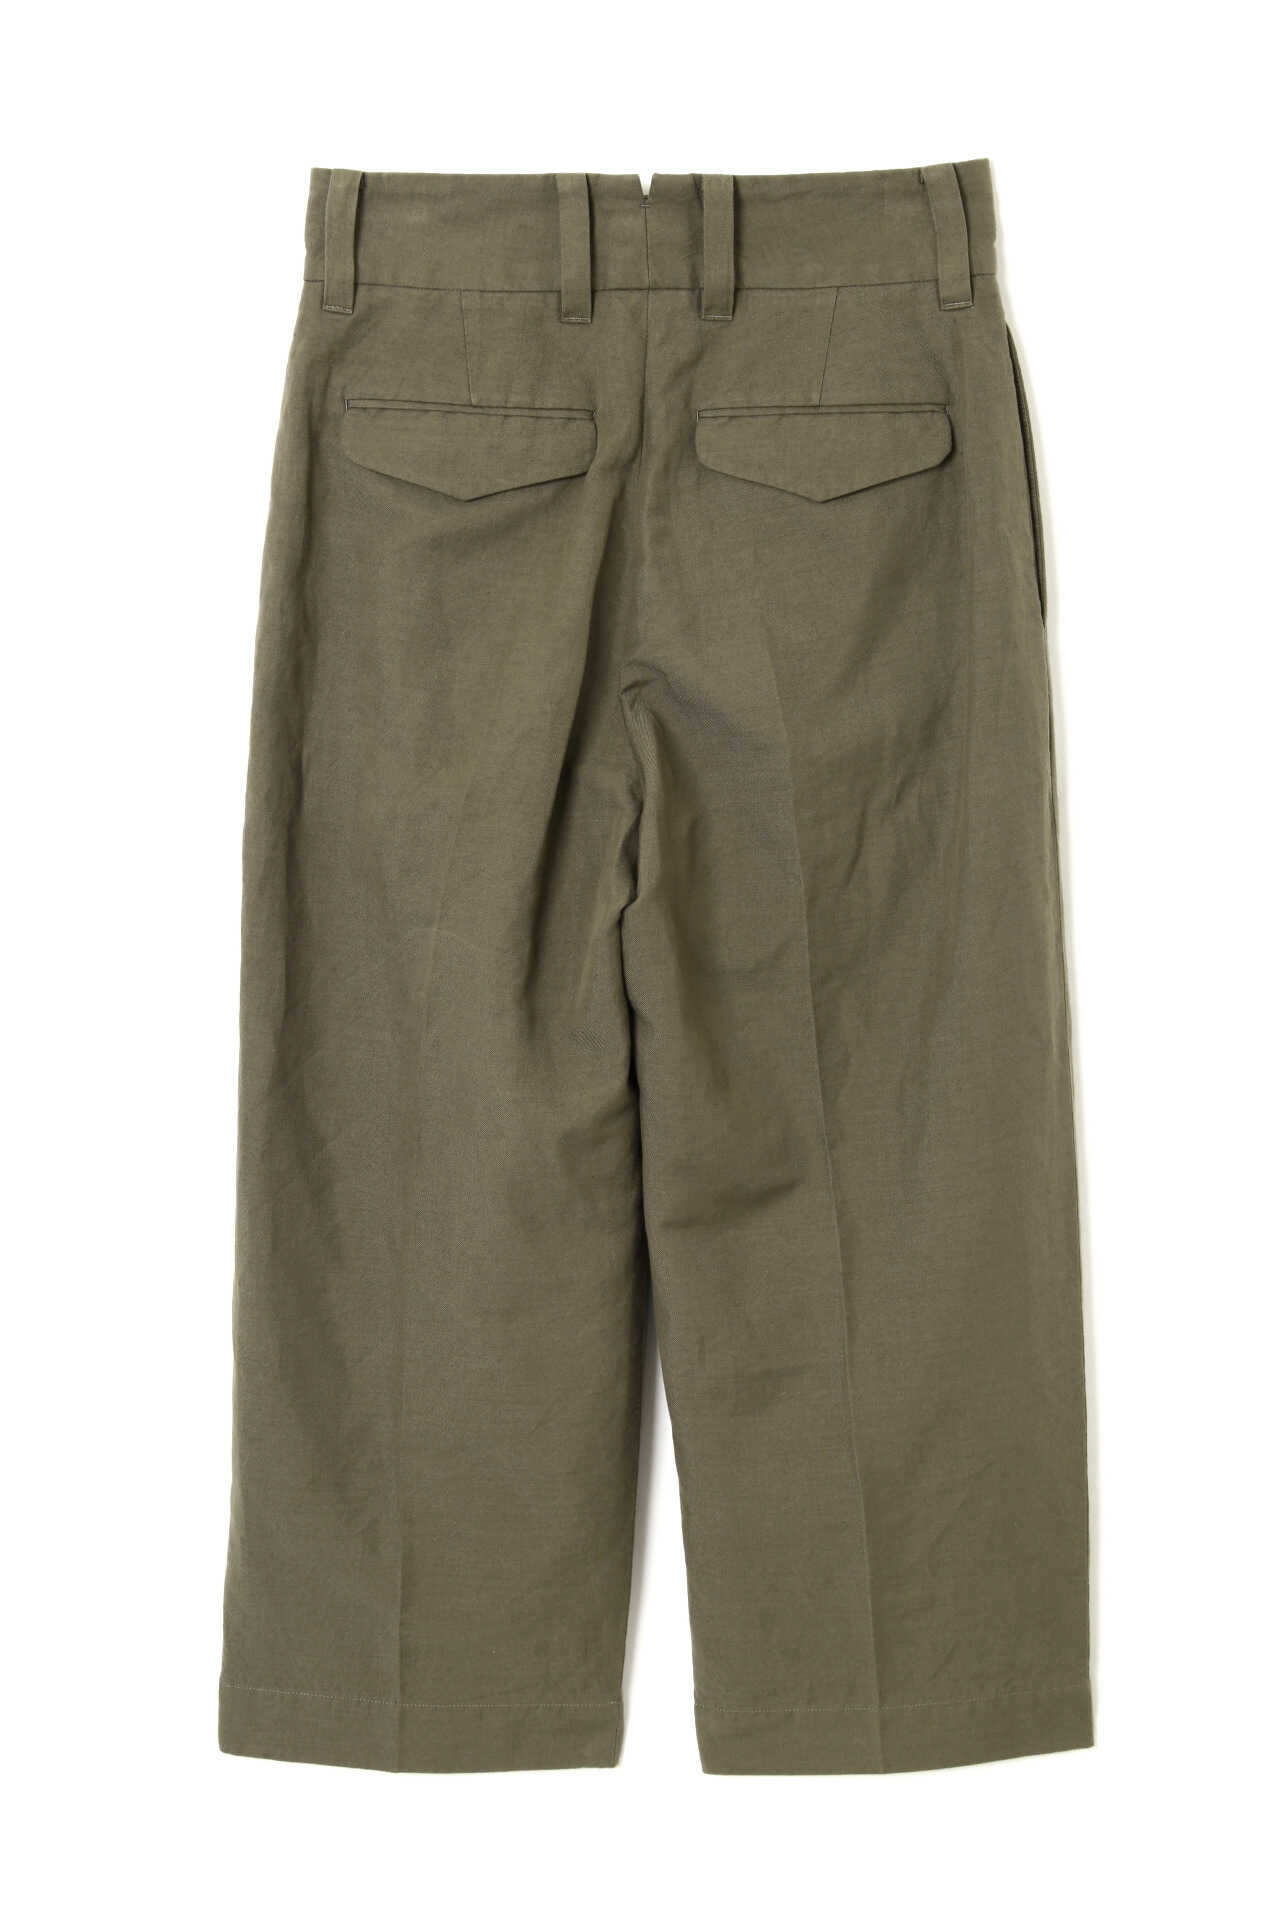 HIGH TWIST LINEN COTTON TWILL8